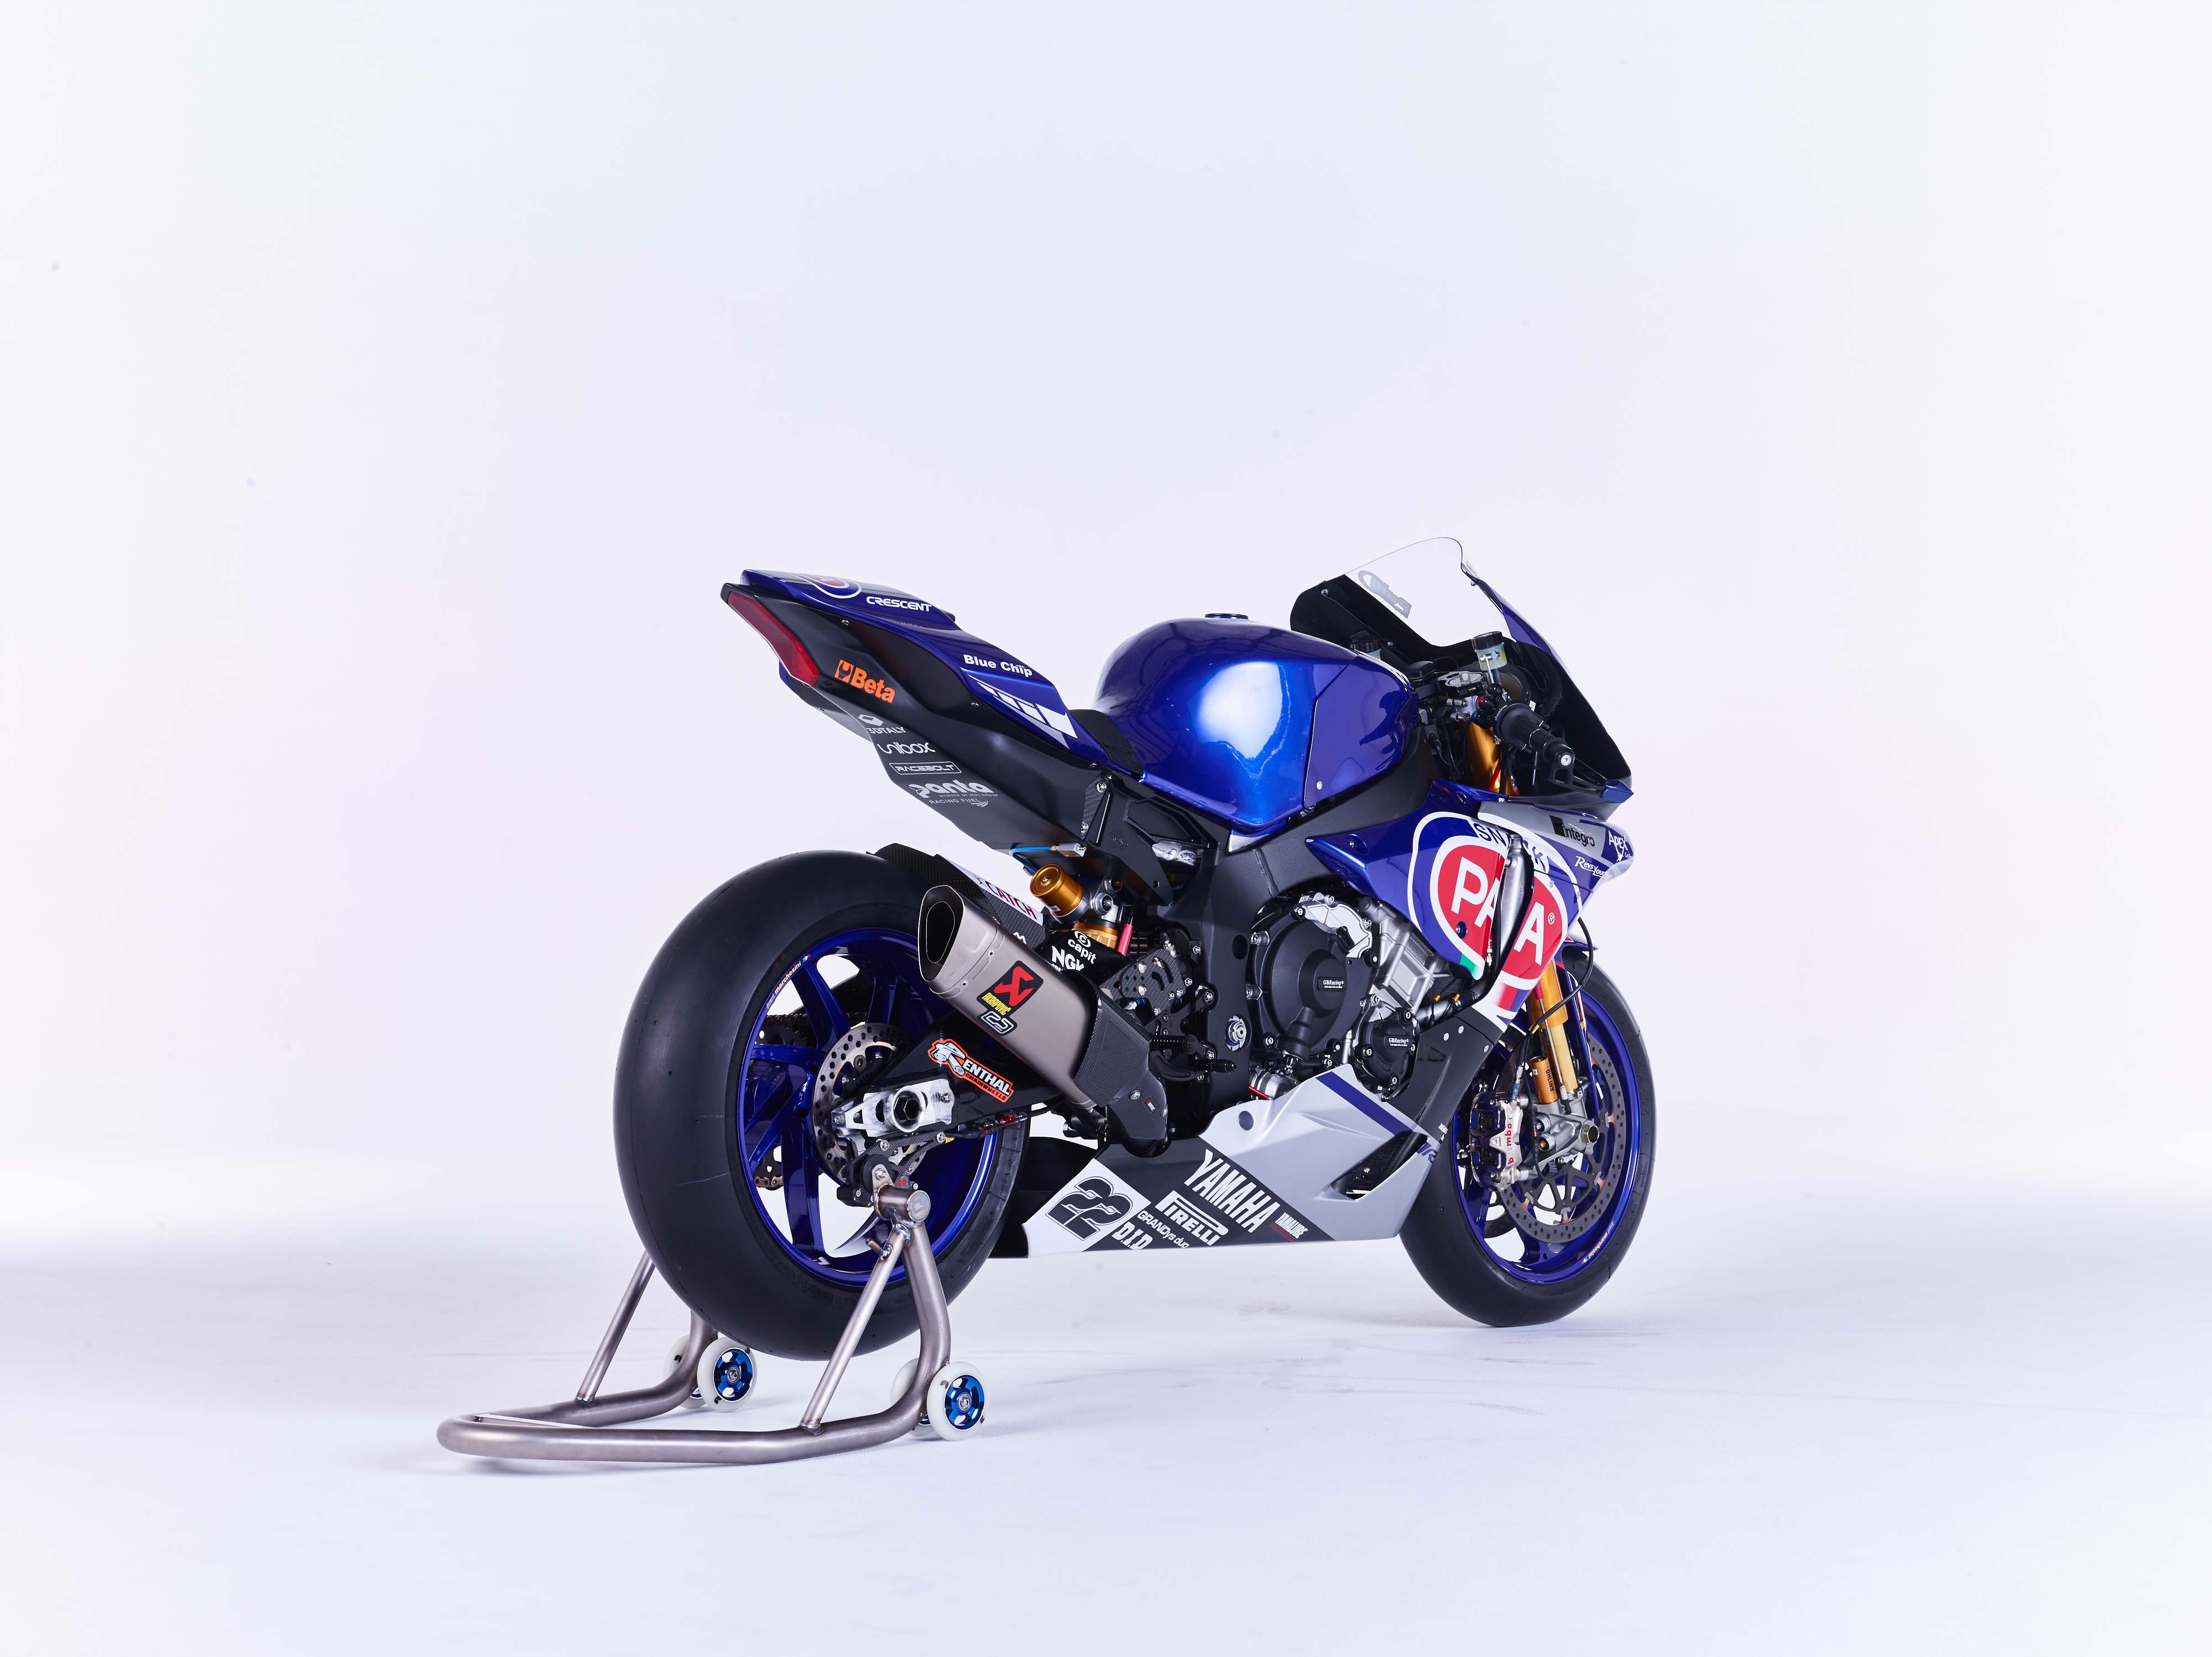 The 2016 yamaha yzf r1 is ready for wsbk duty for Yamaha r1 2016 price